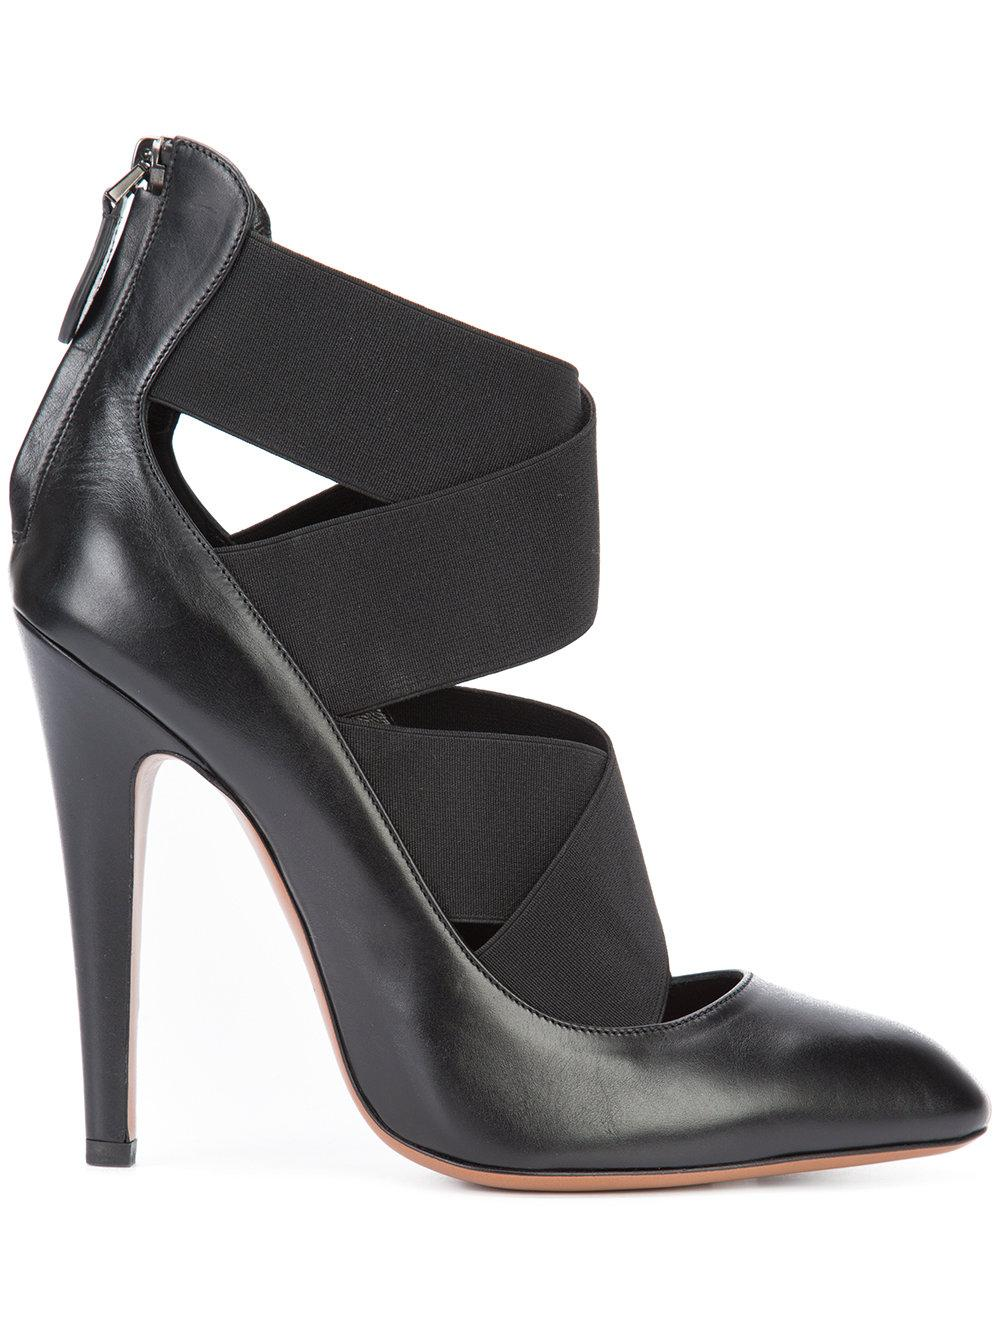 Crossover Leather High Heel Shoes